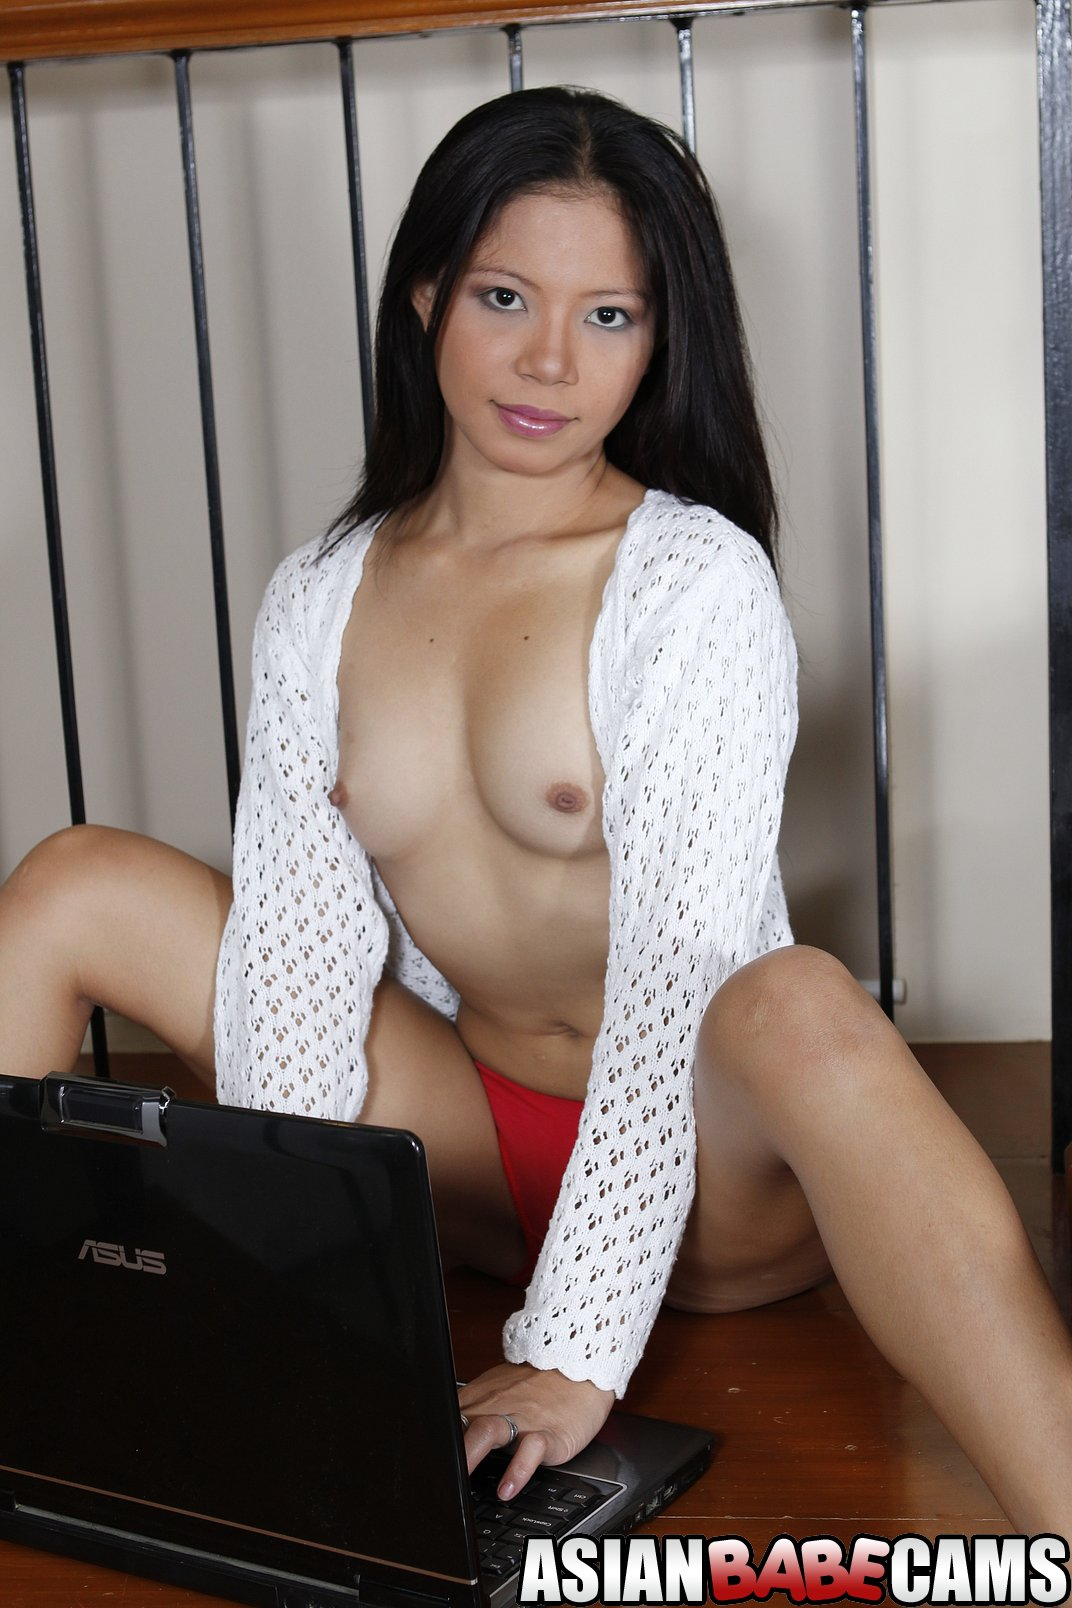 Sexy asian cam babe shows off her tits 2